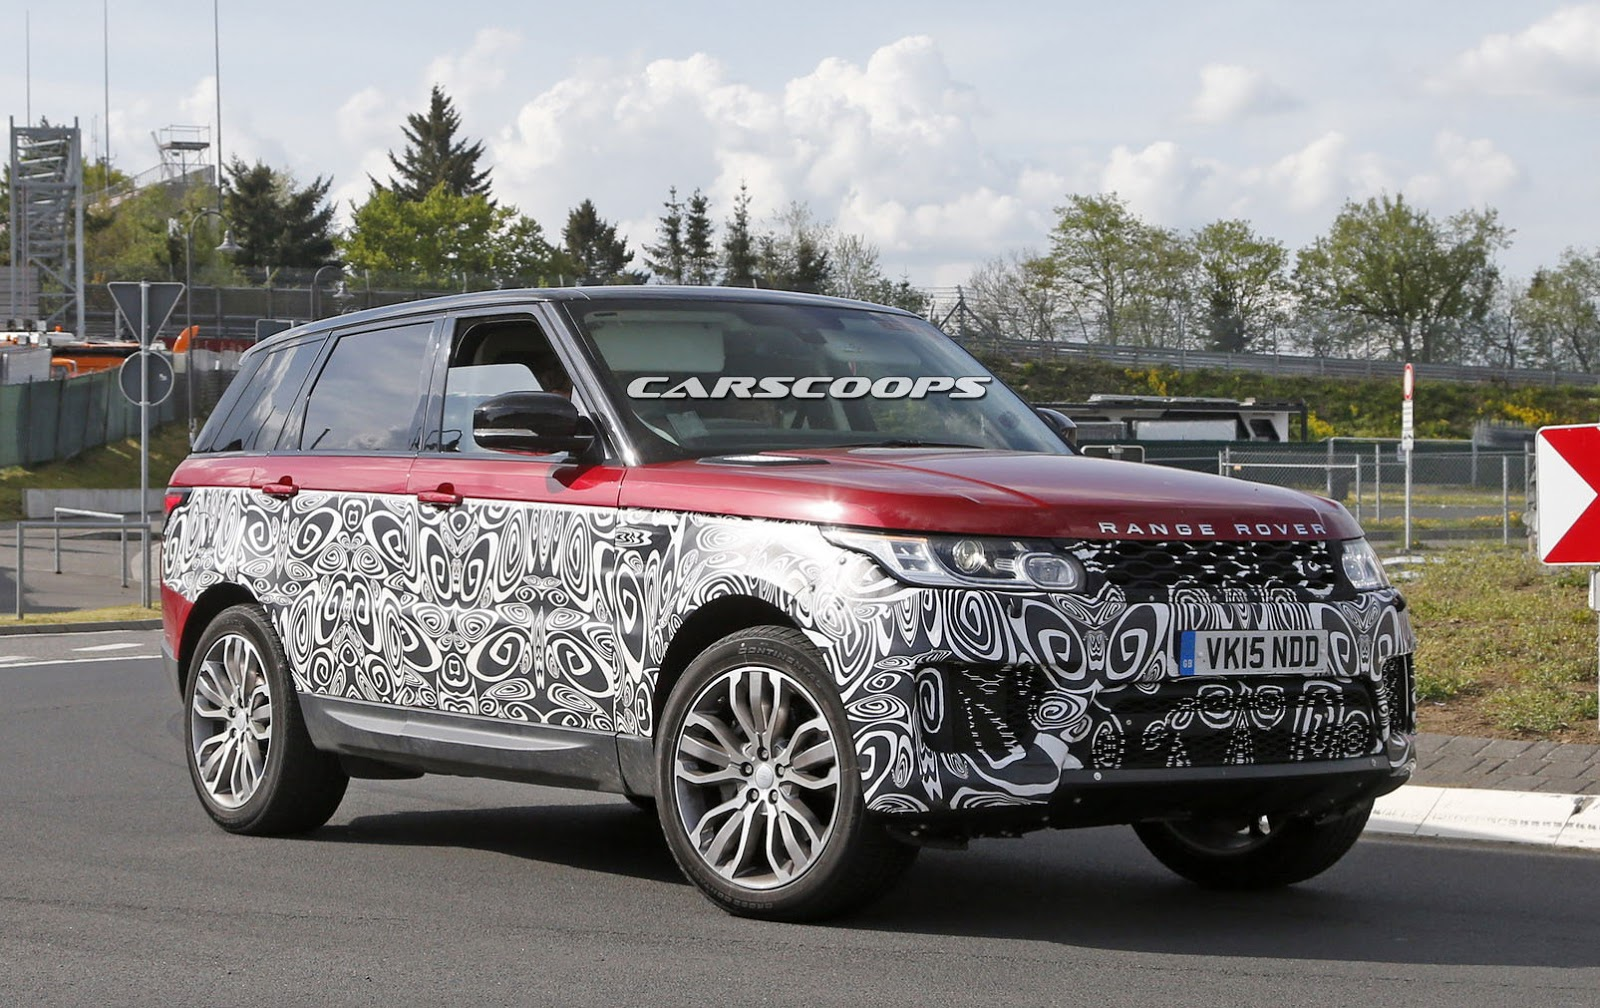 first look inside the facelifted 2017 range rover sport carscoops. Black Bedroom Furniture Sets. Home Design Ideas